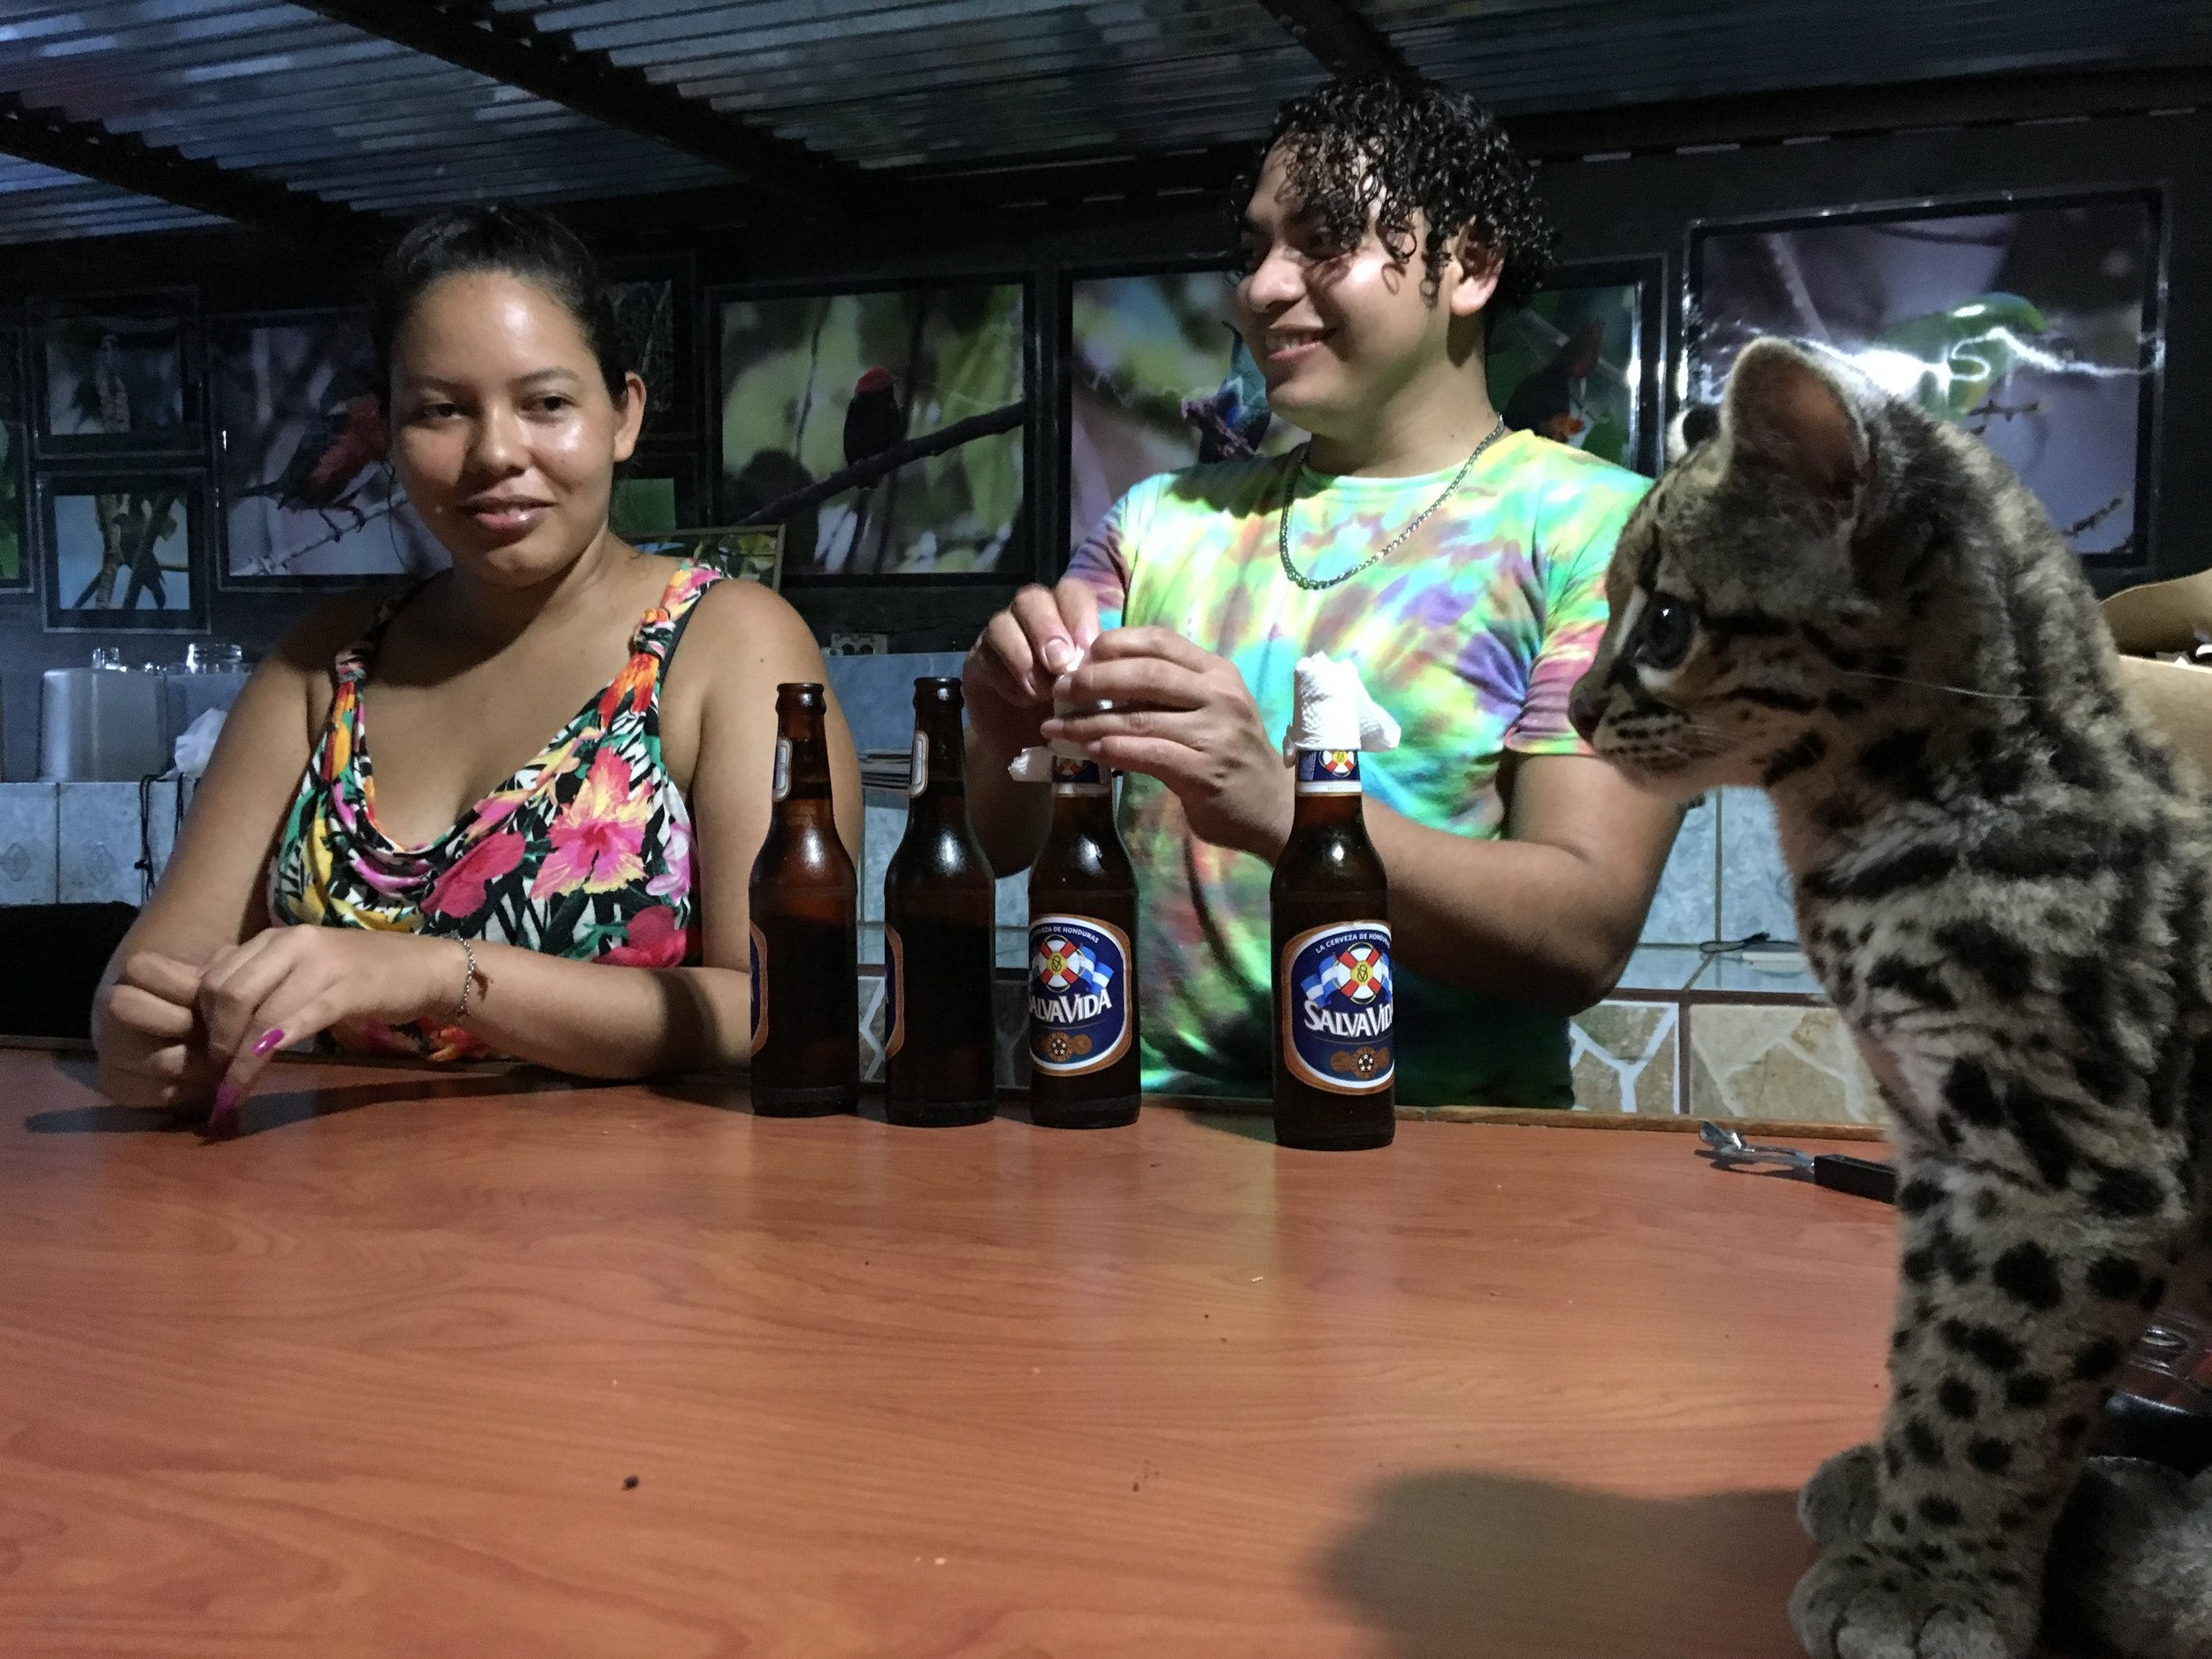 Ocelot and beers. The women who helped tend the young ocelot until its big enough to roam the forest on its own.